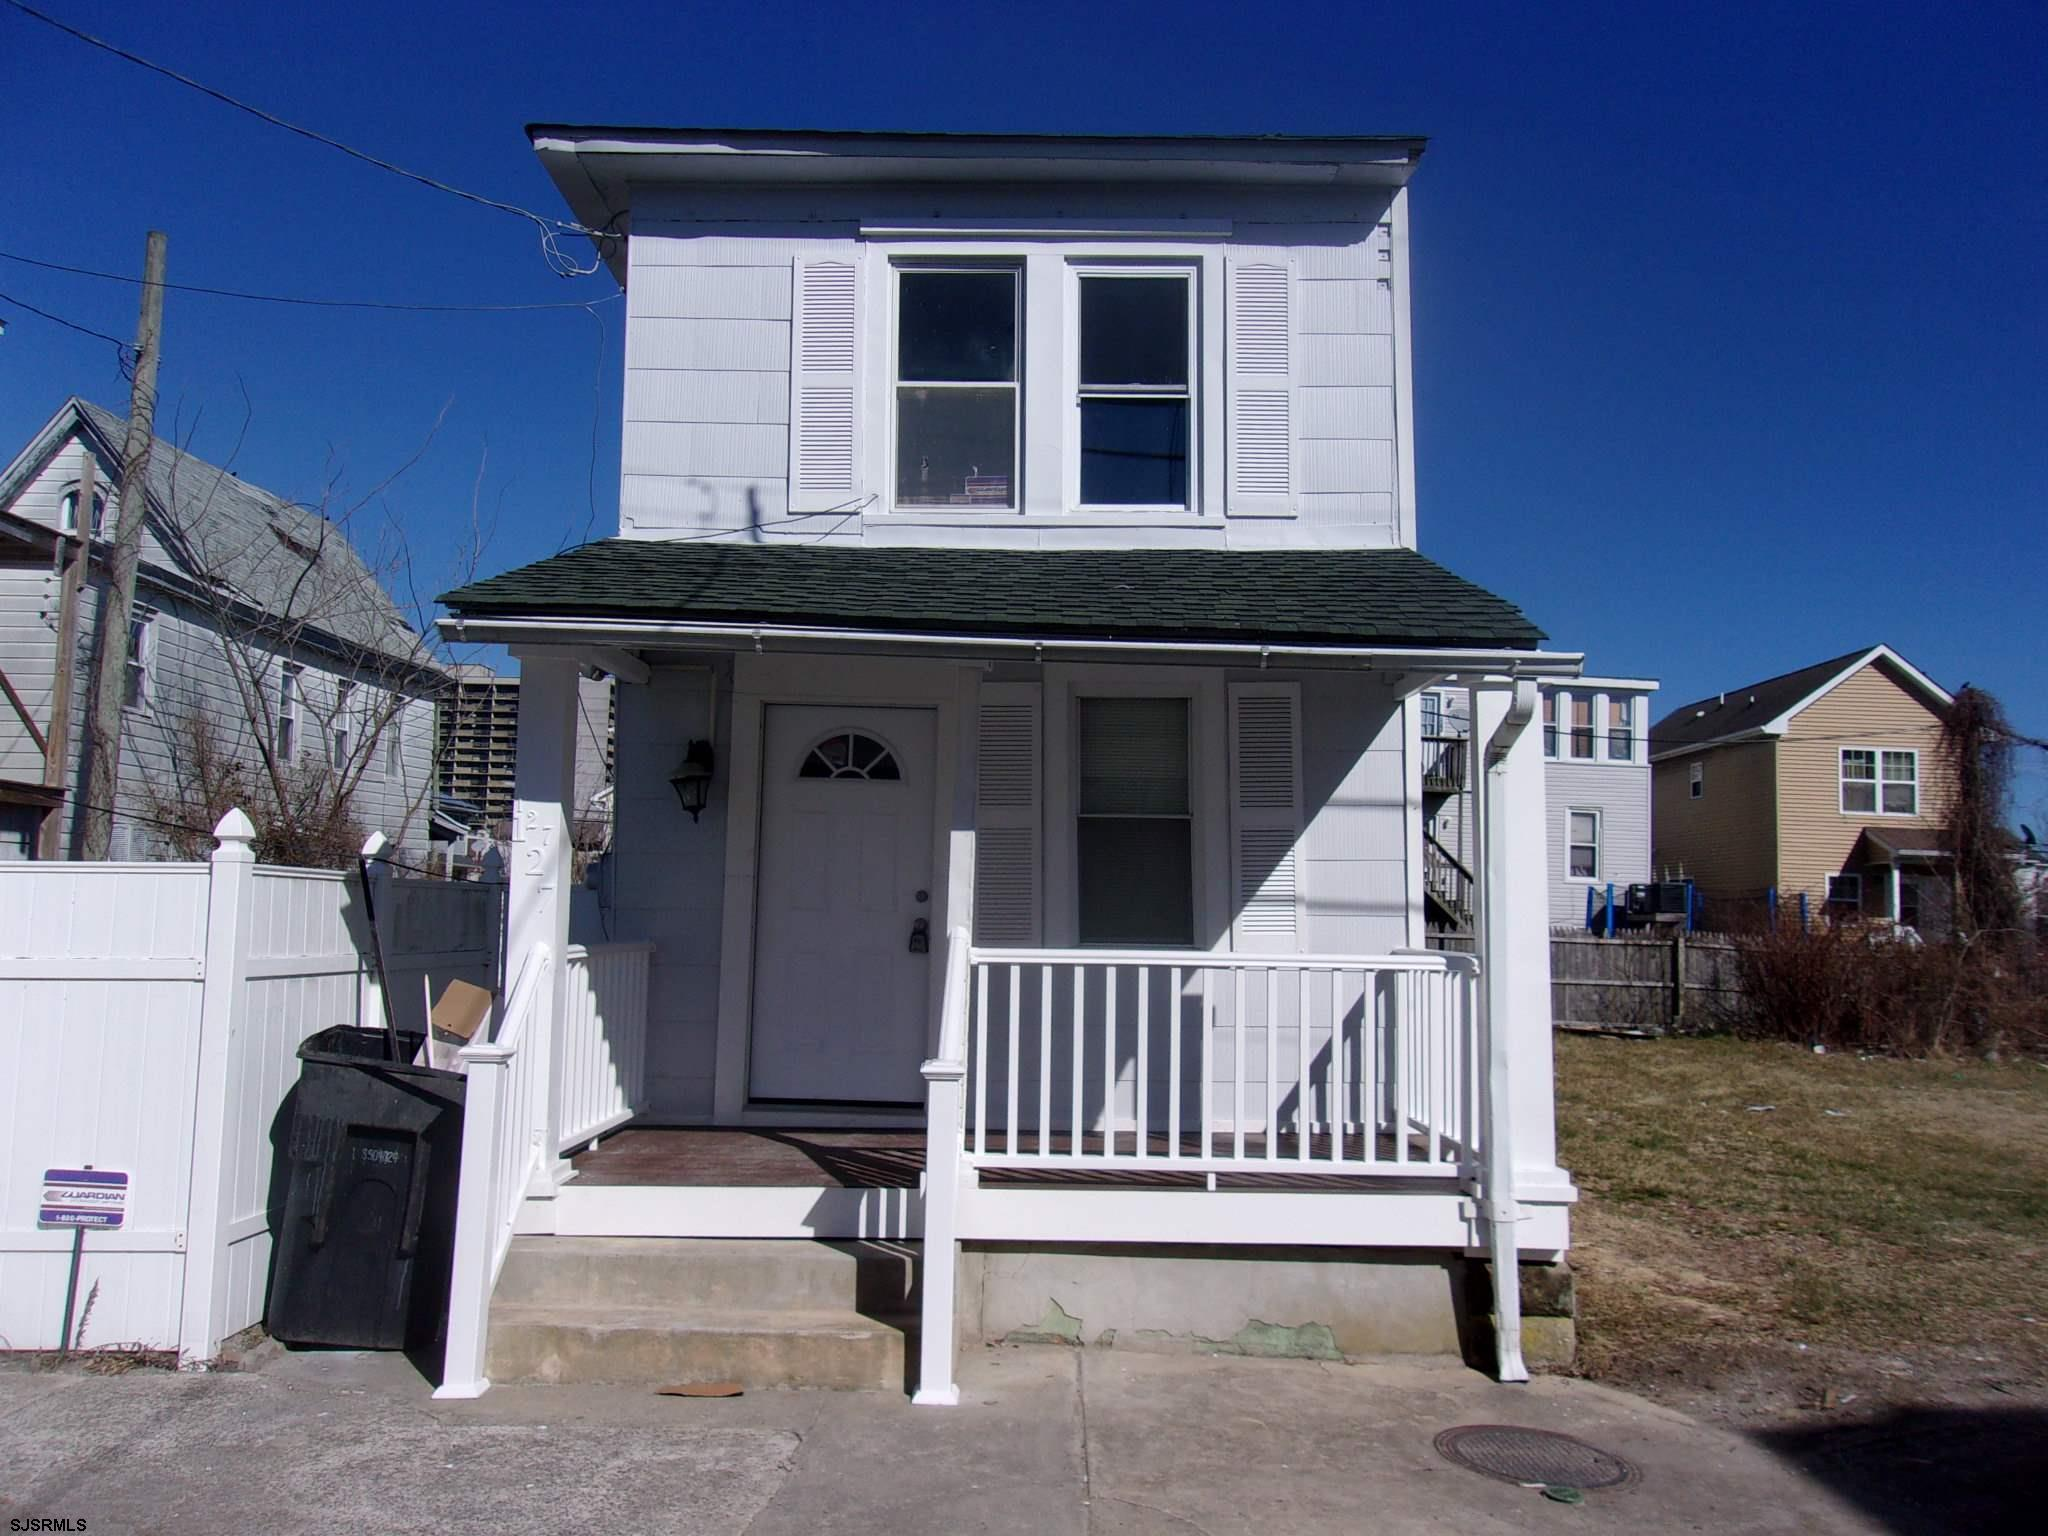 Renovated 3 bed 1.5 bath 2 story on a double lot which allows off street parking. Perfect for Air B